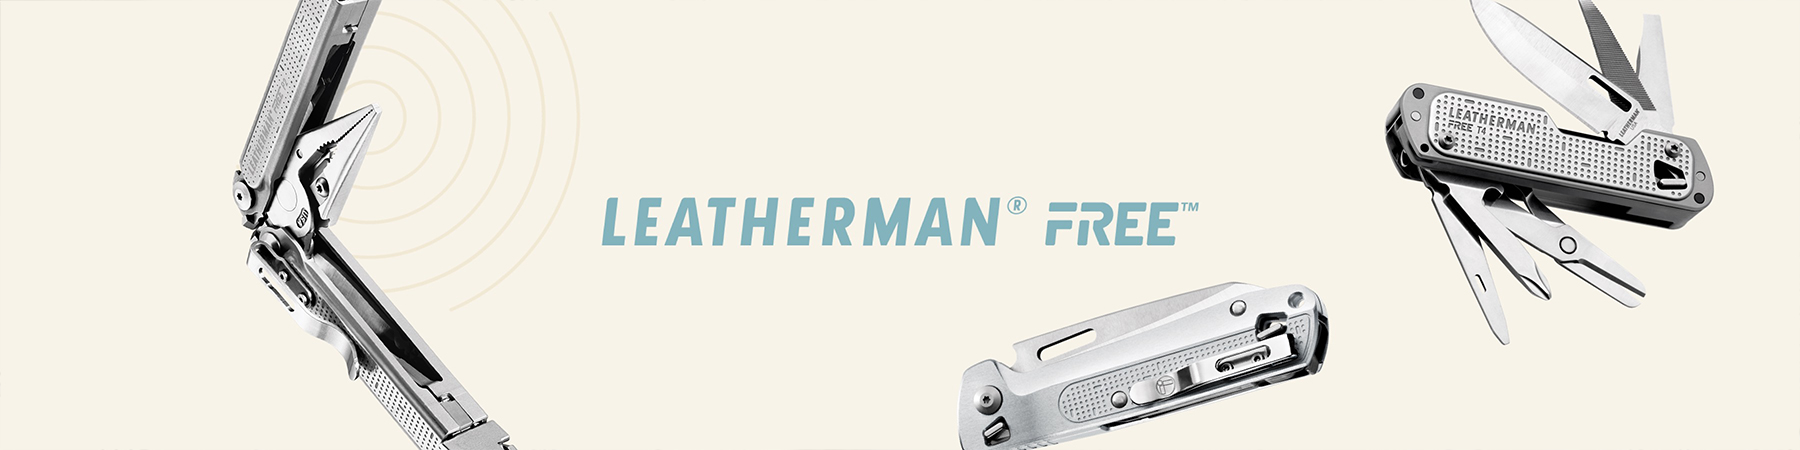 Leatherman Category image - Leatherman Free